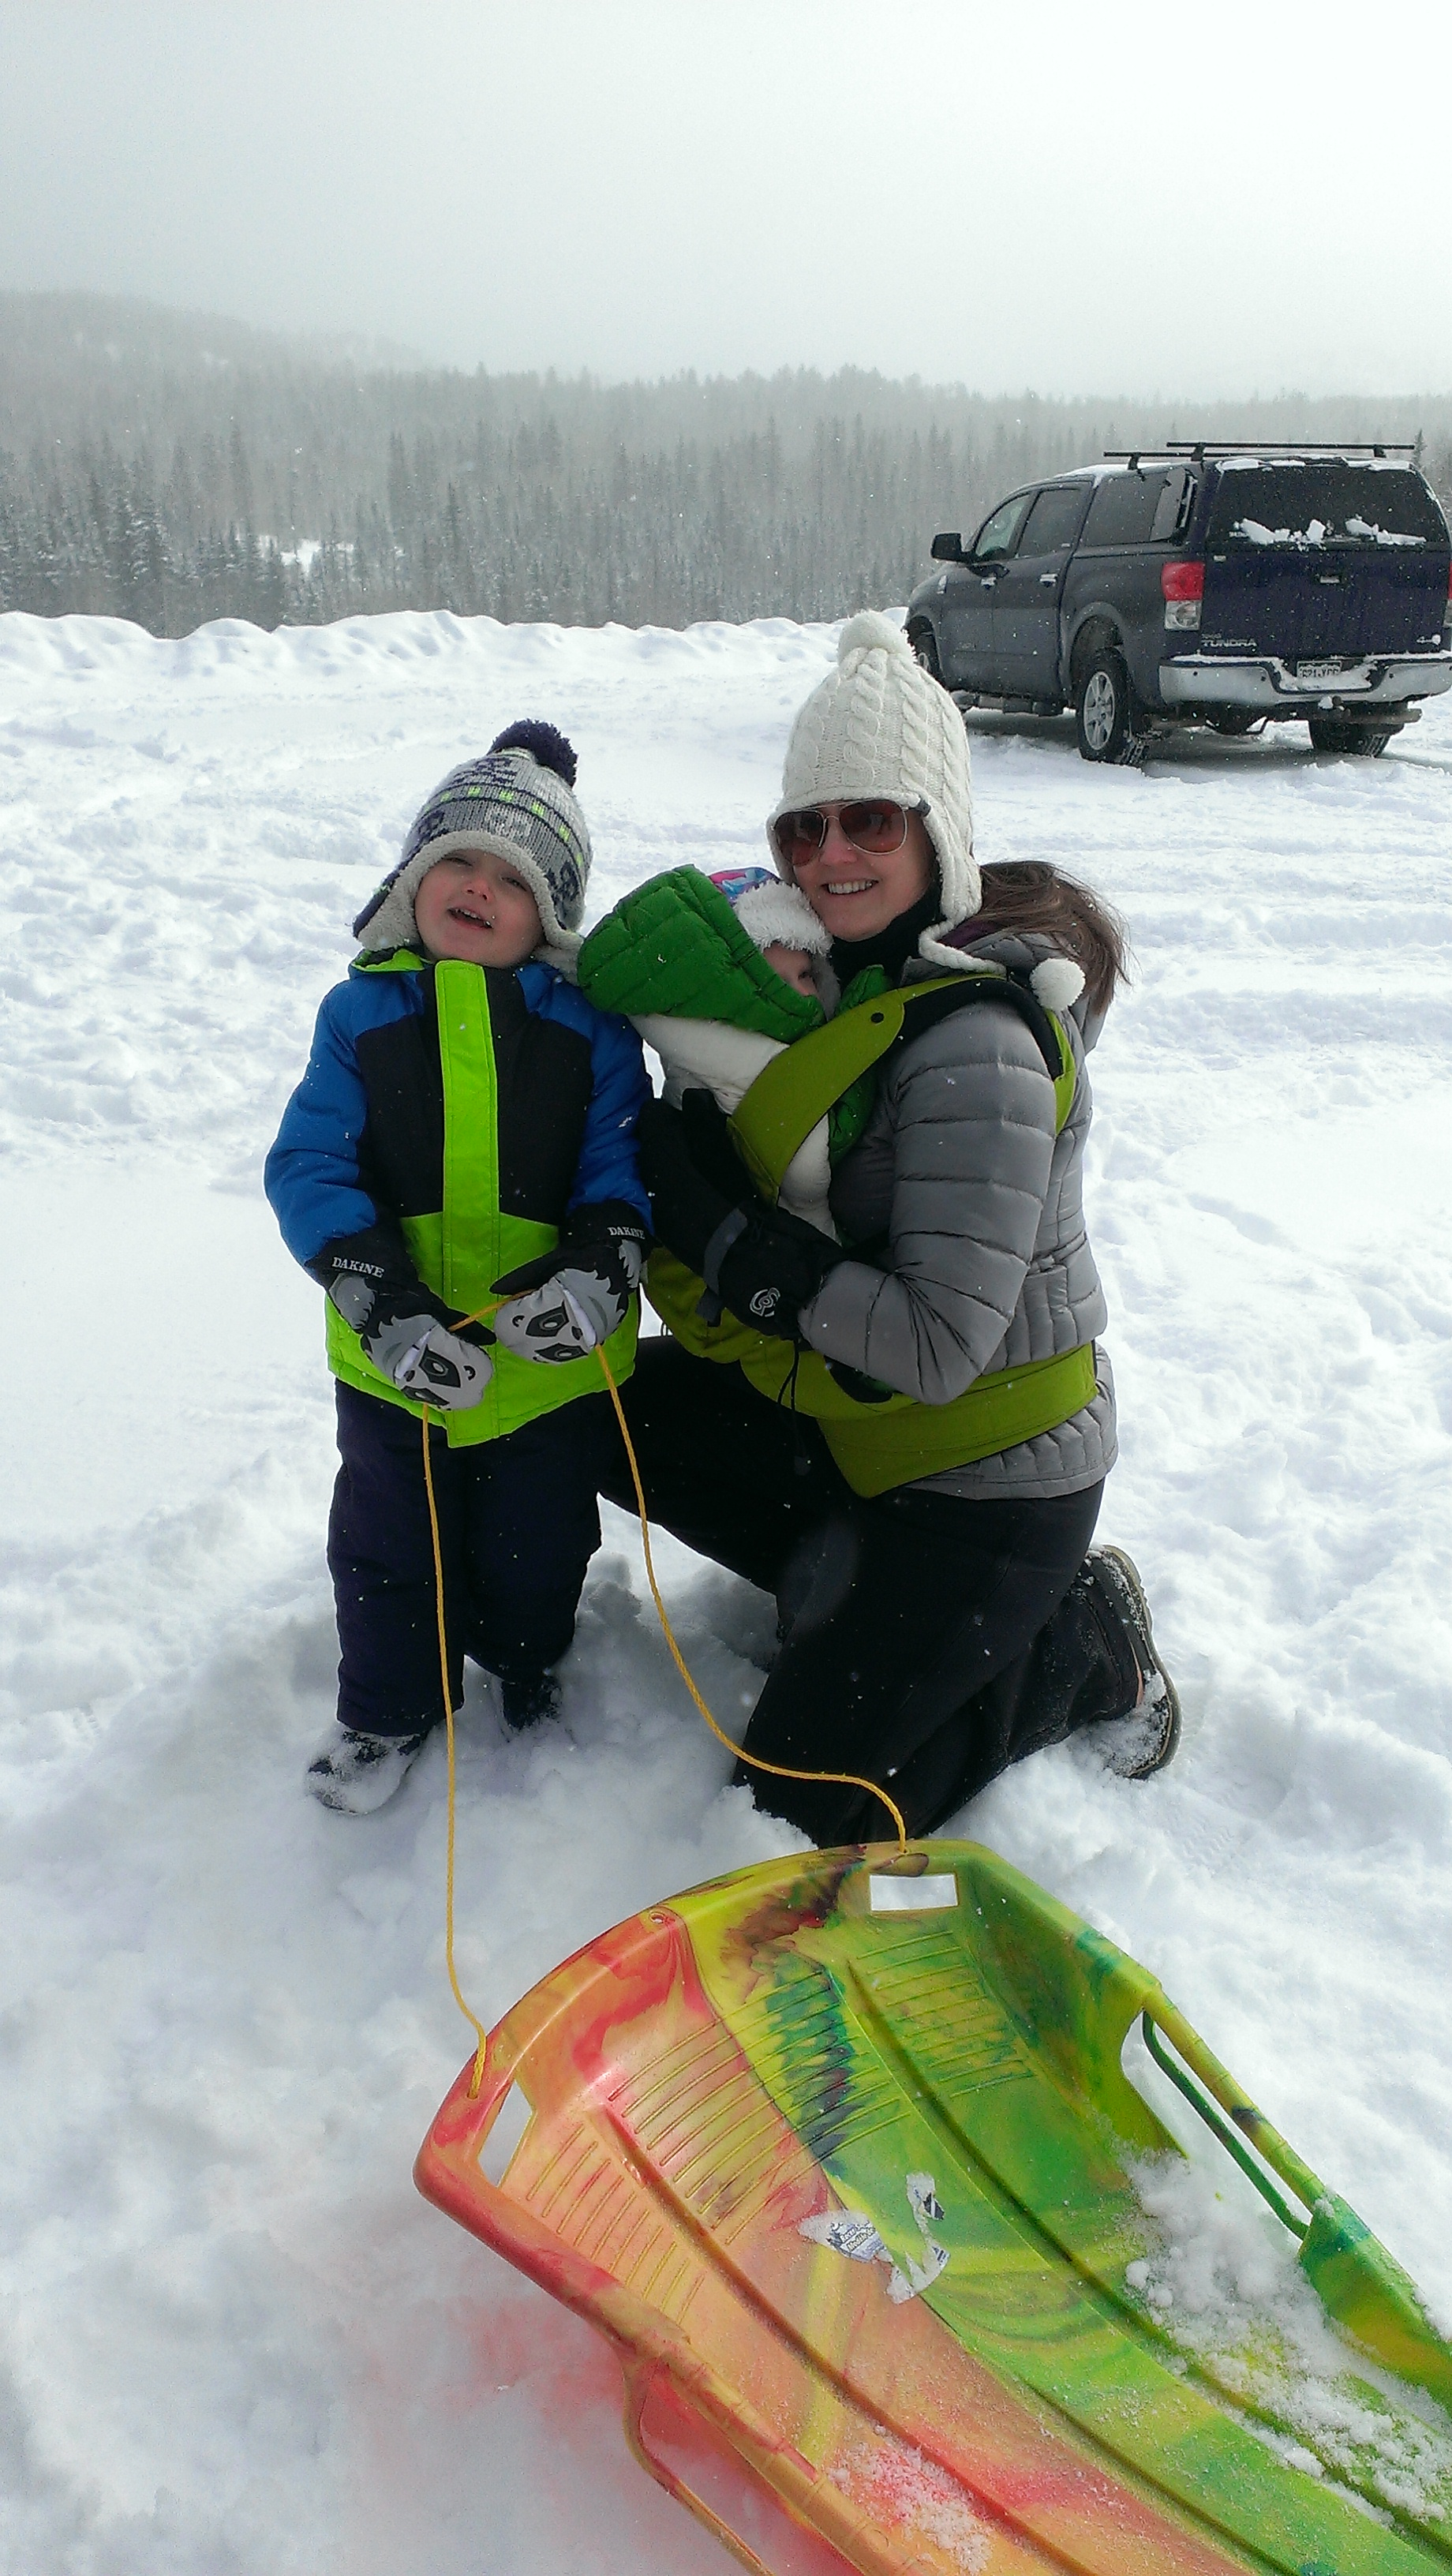 Sledding at Lime Creek